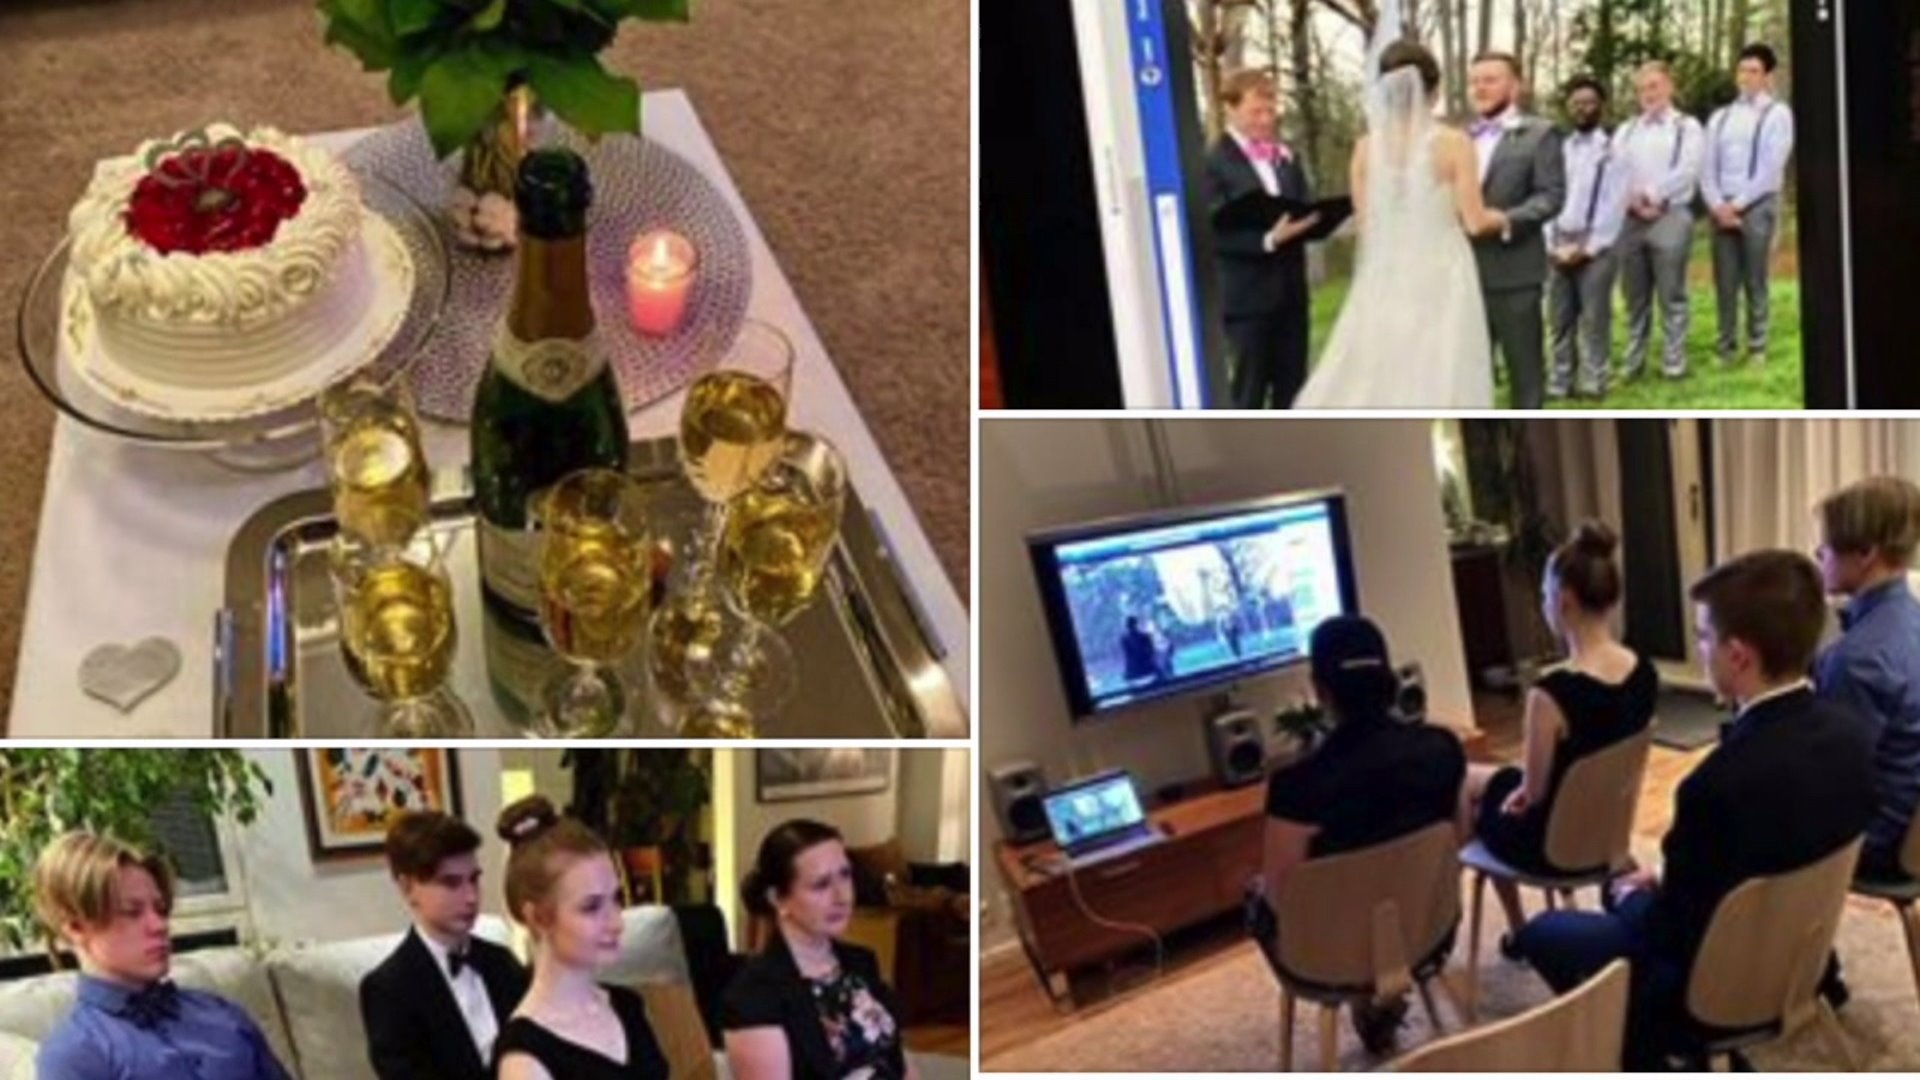 Local couple uses Facebook to 'invite' guests to their wedding amid coronavirus restrictions, streams wedding live